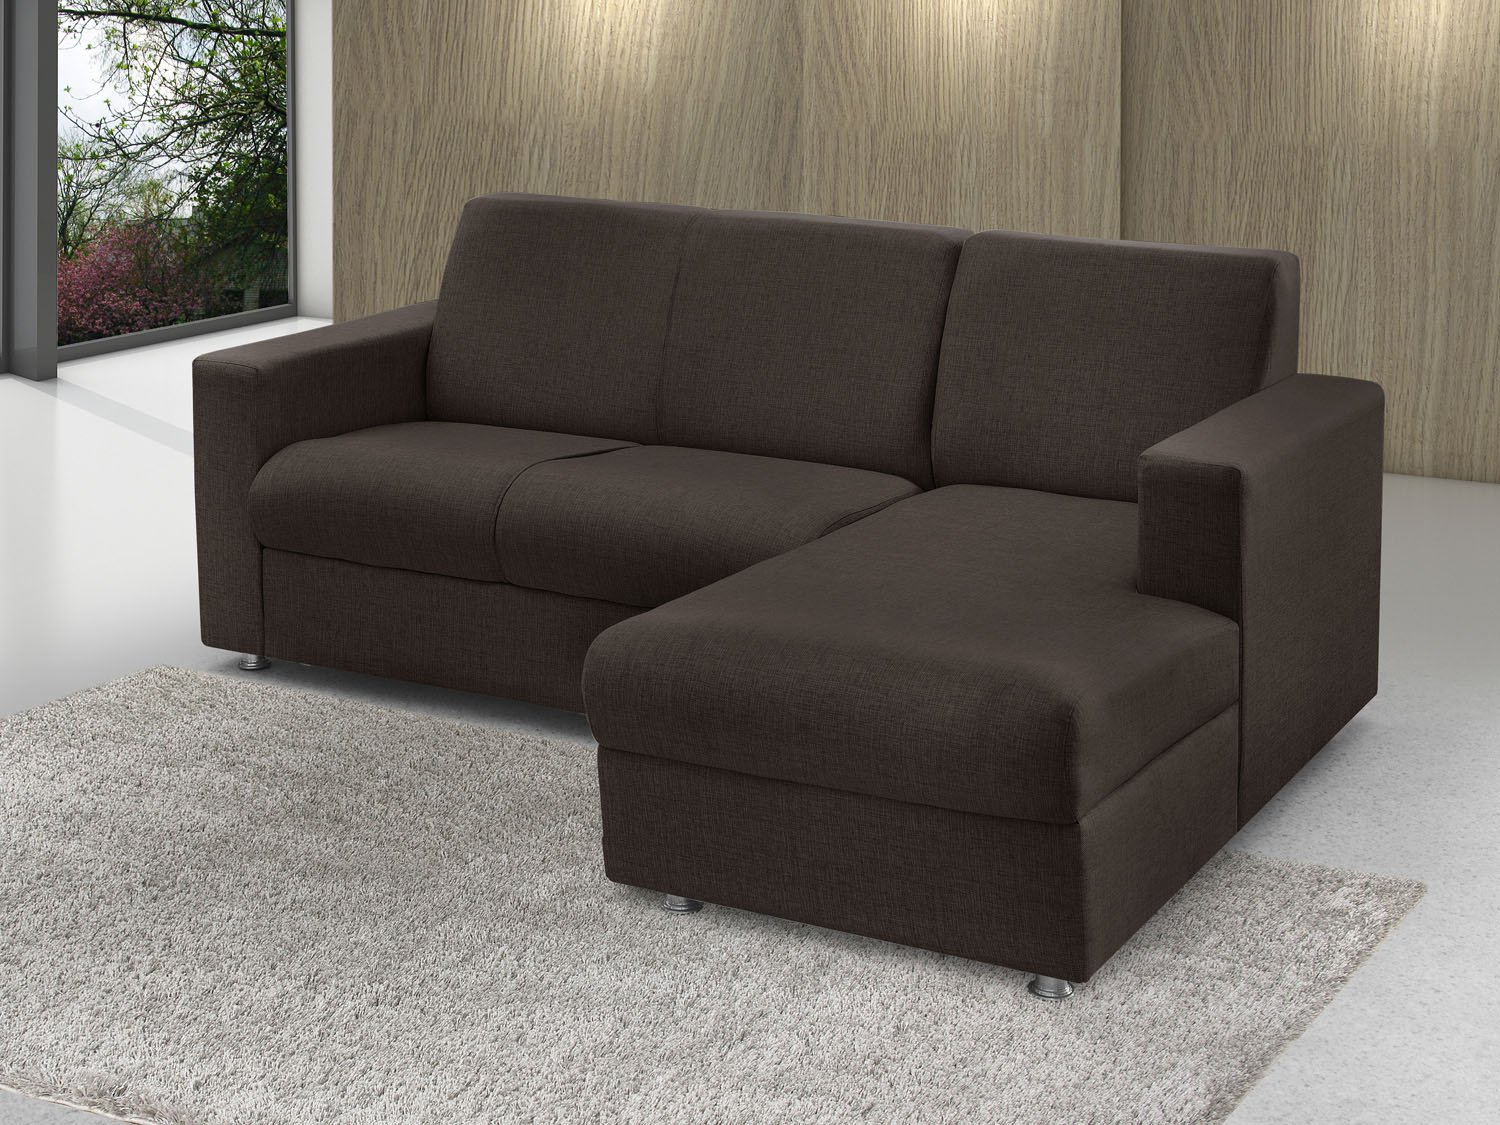 Sofa Chaise 2 Lugares Www Gradschoolfairs Com